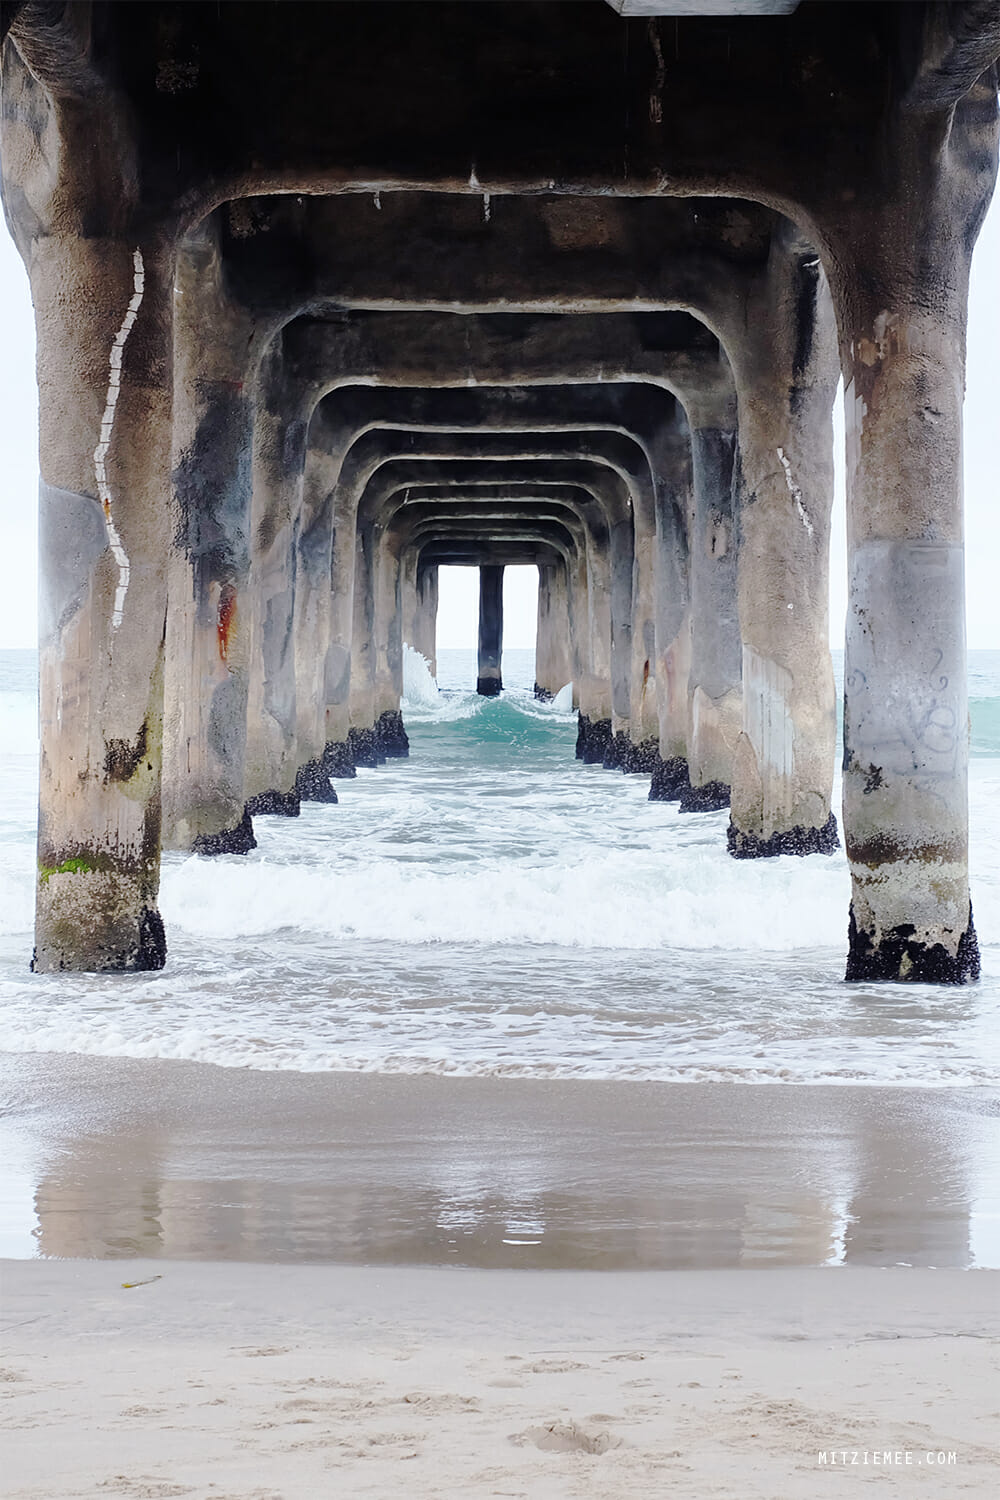 Manhattan Beach, Los Angeles